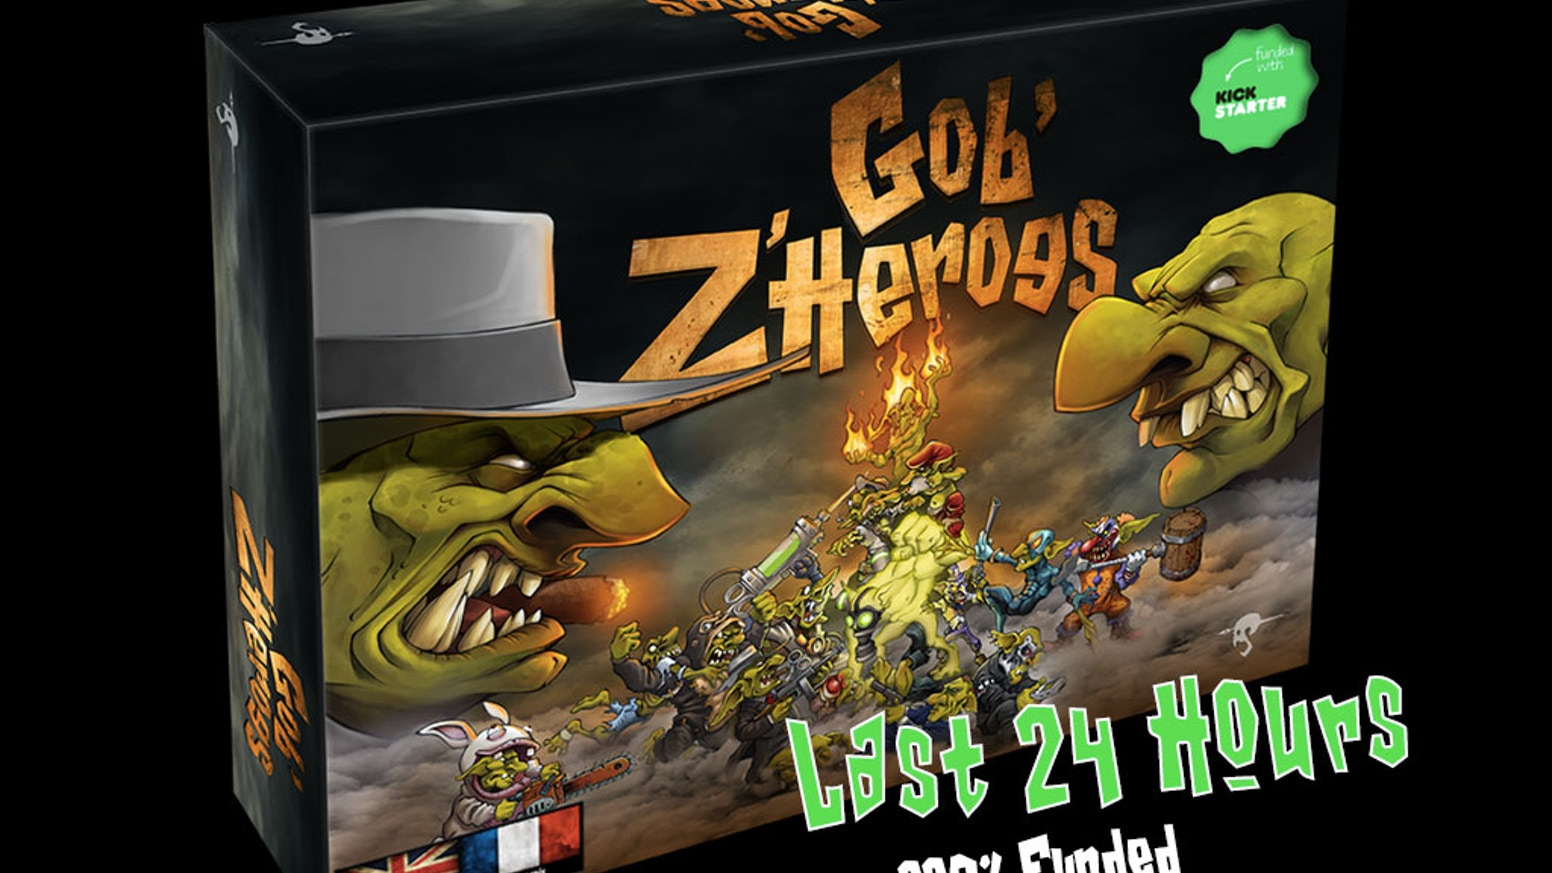 A Board Game clash where Gob'z try to be heroes... ...everything is allowed, including the most ludicrous attacks...!!